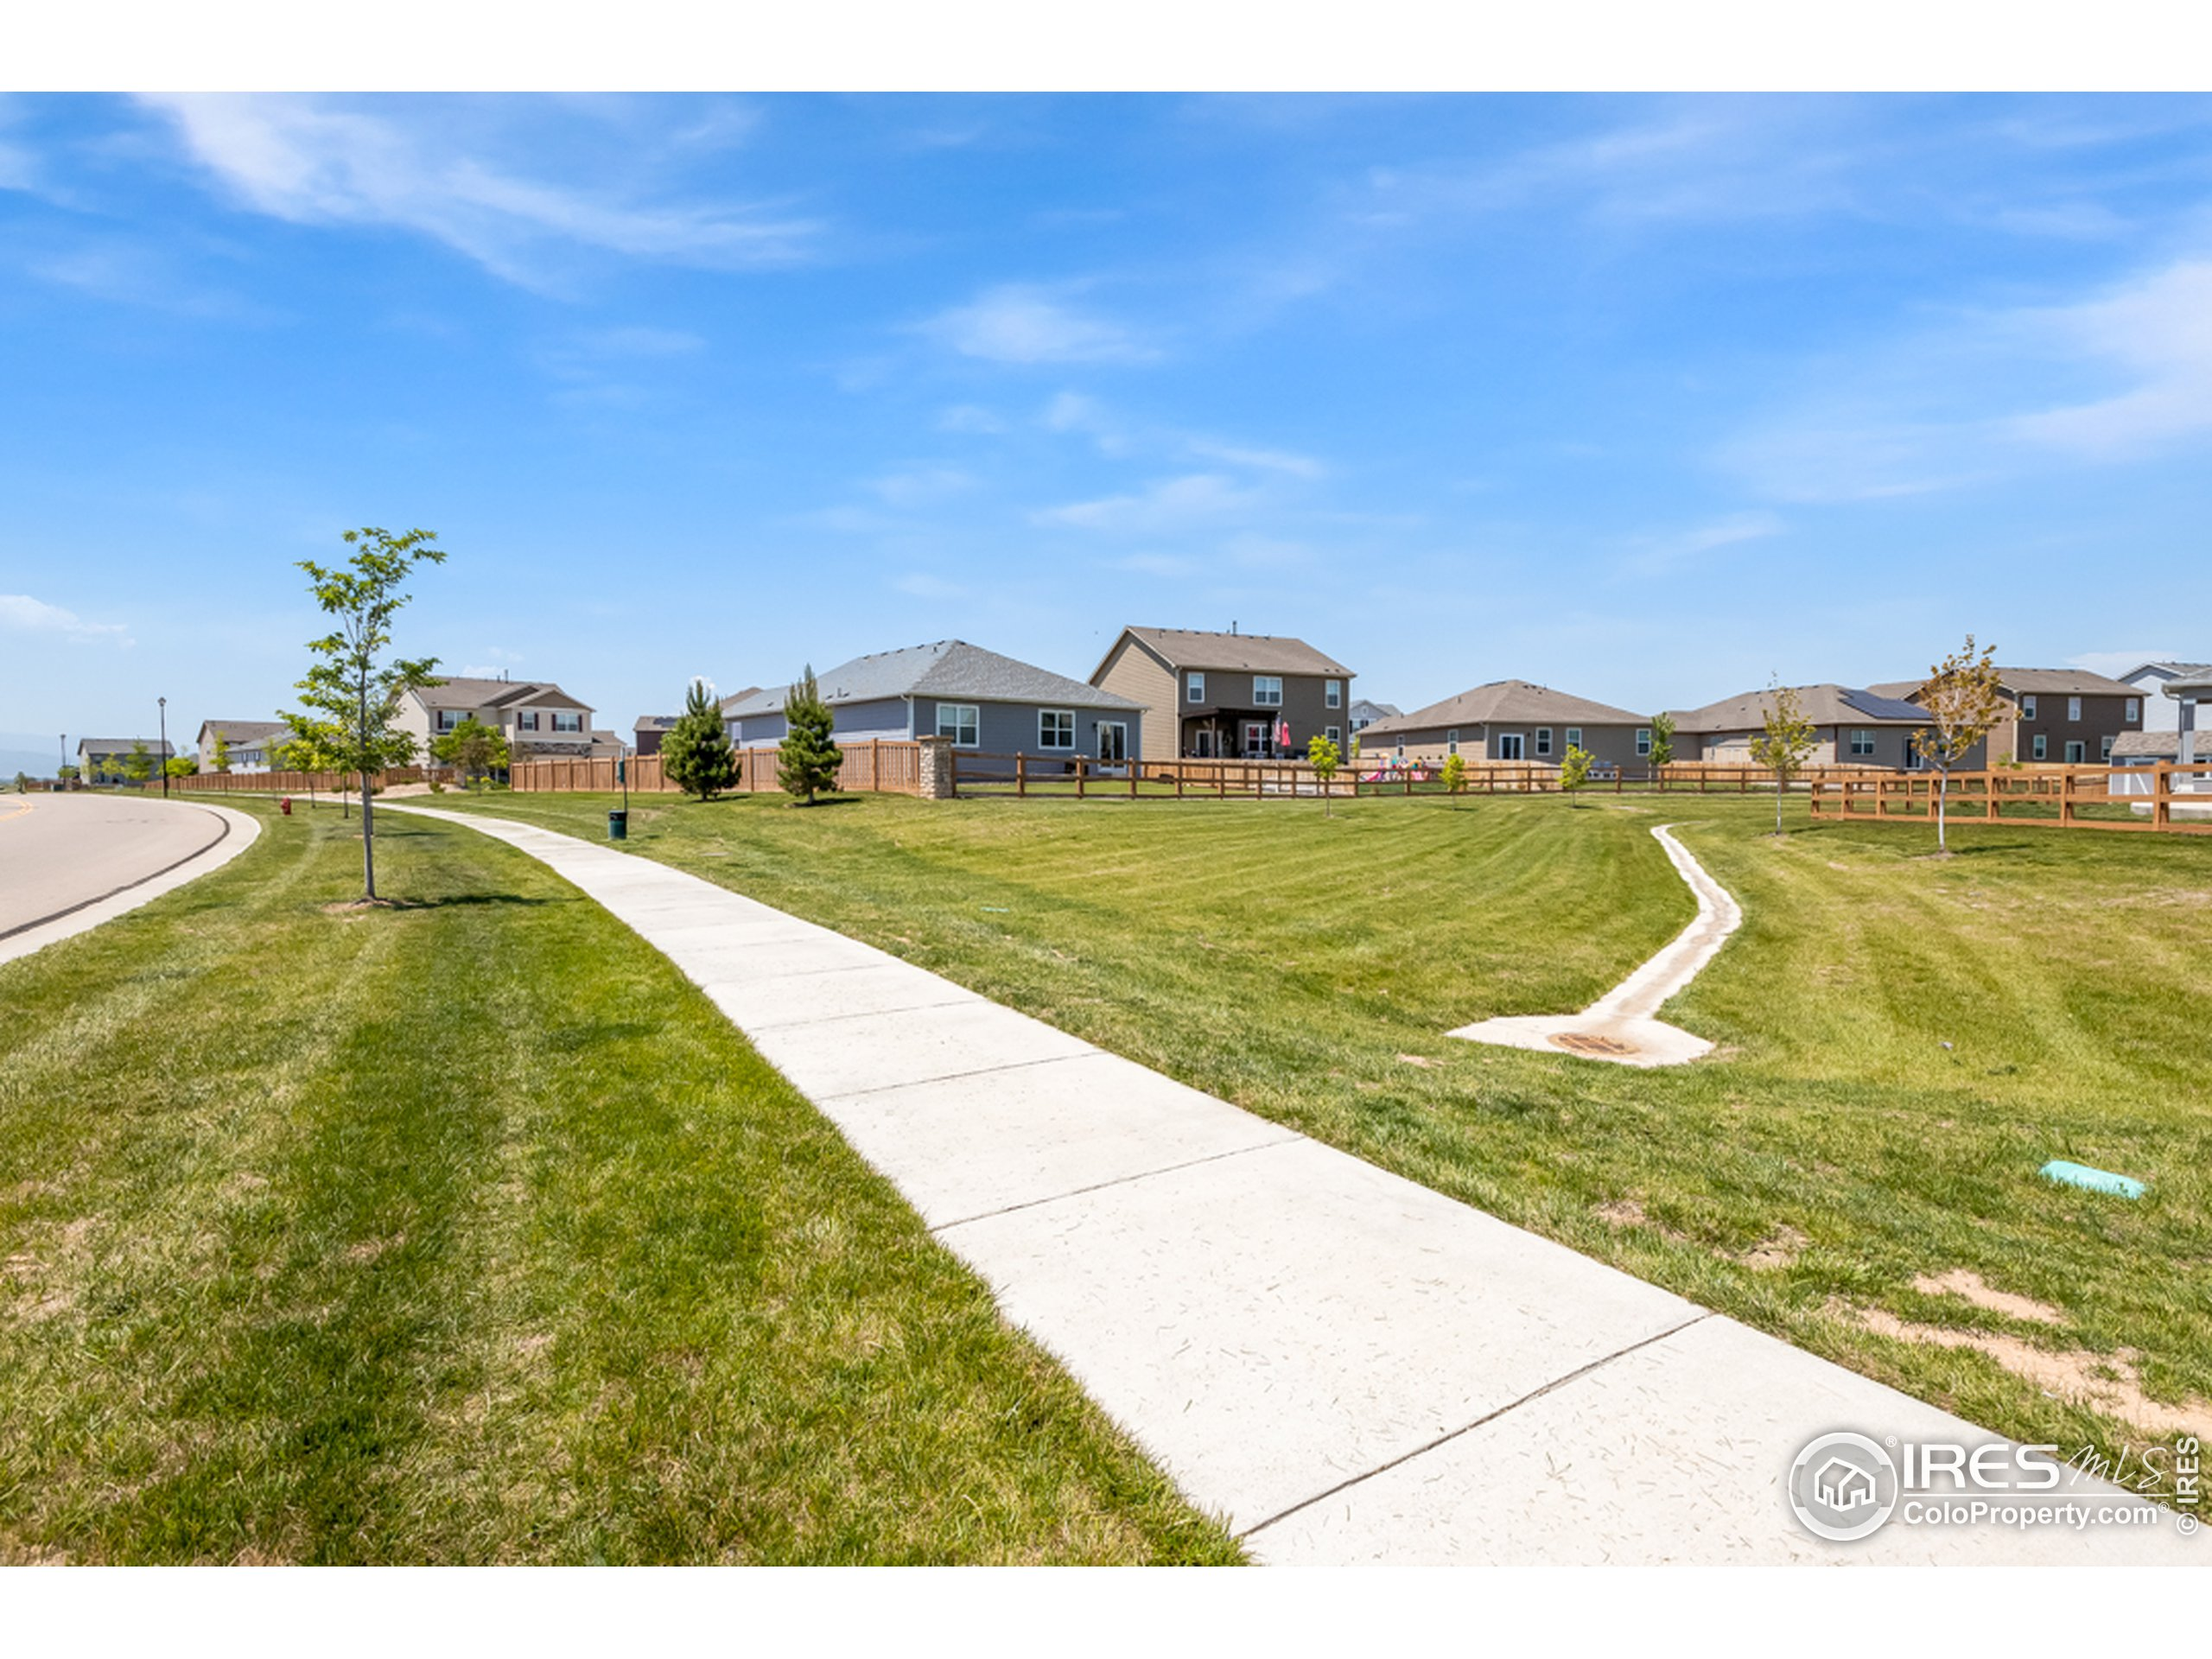 Extensive Neighborhood Green Space Behind Home allows for that Feeling of Roominess in a Neighborhood.